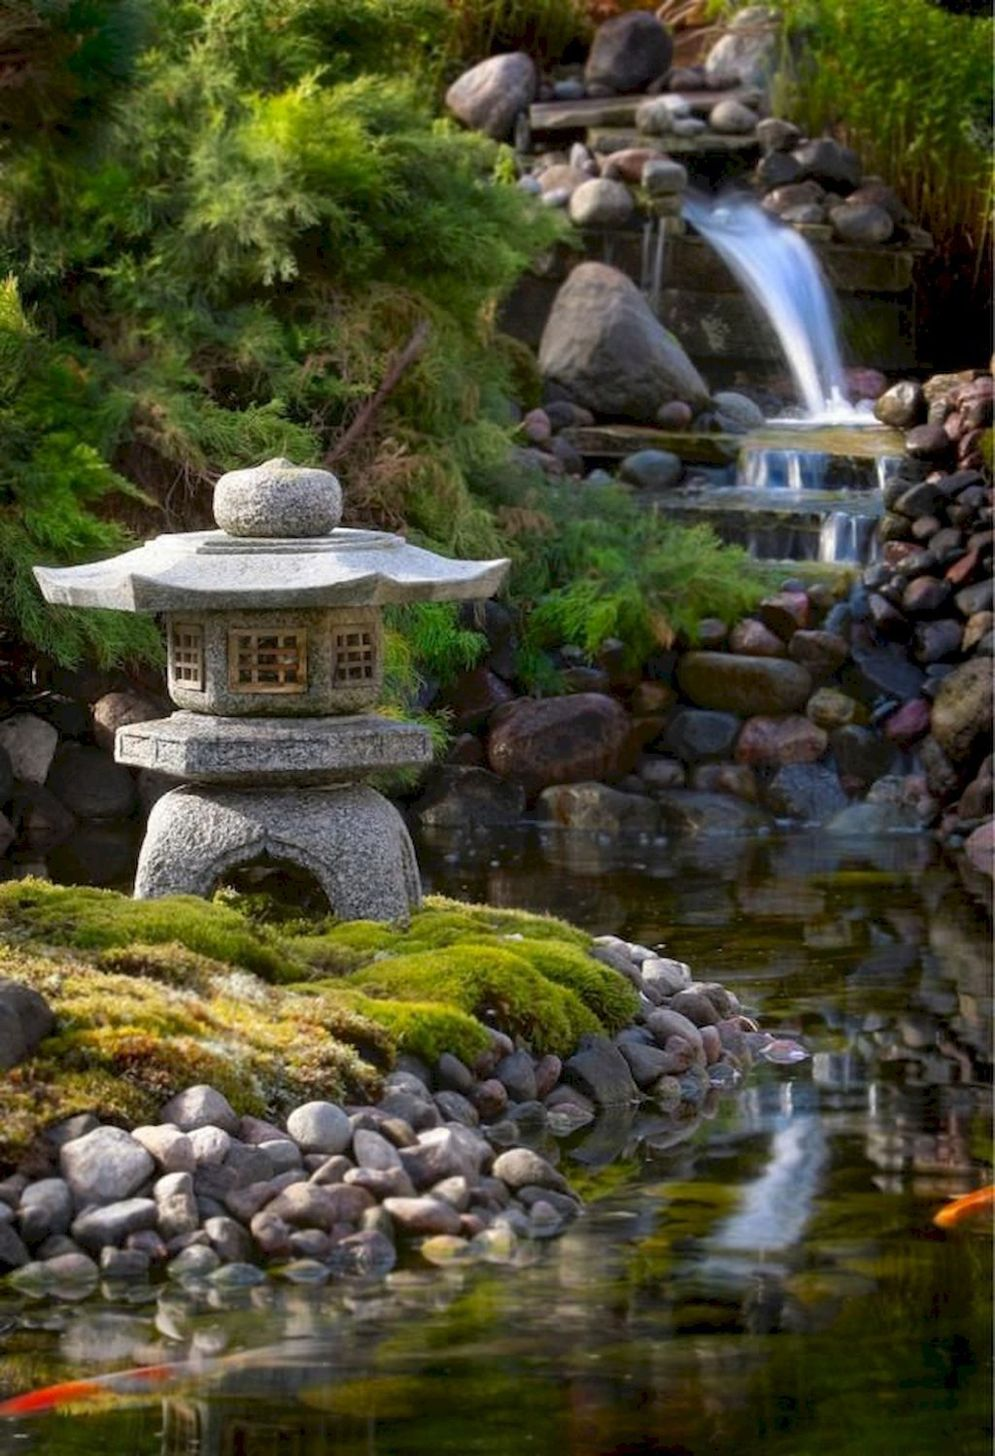 Beautiful Zen garden style with peaceful arrangements creating peaceful and harmonies display that will calm our mind Image 24